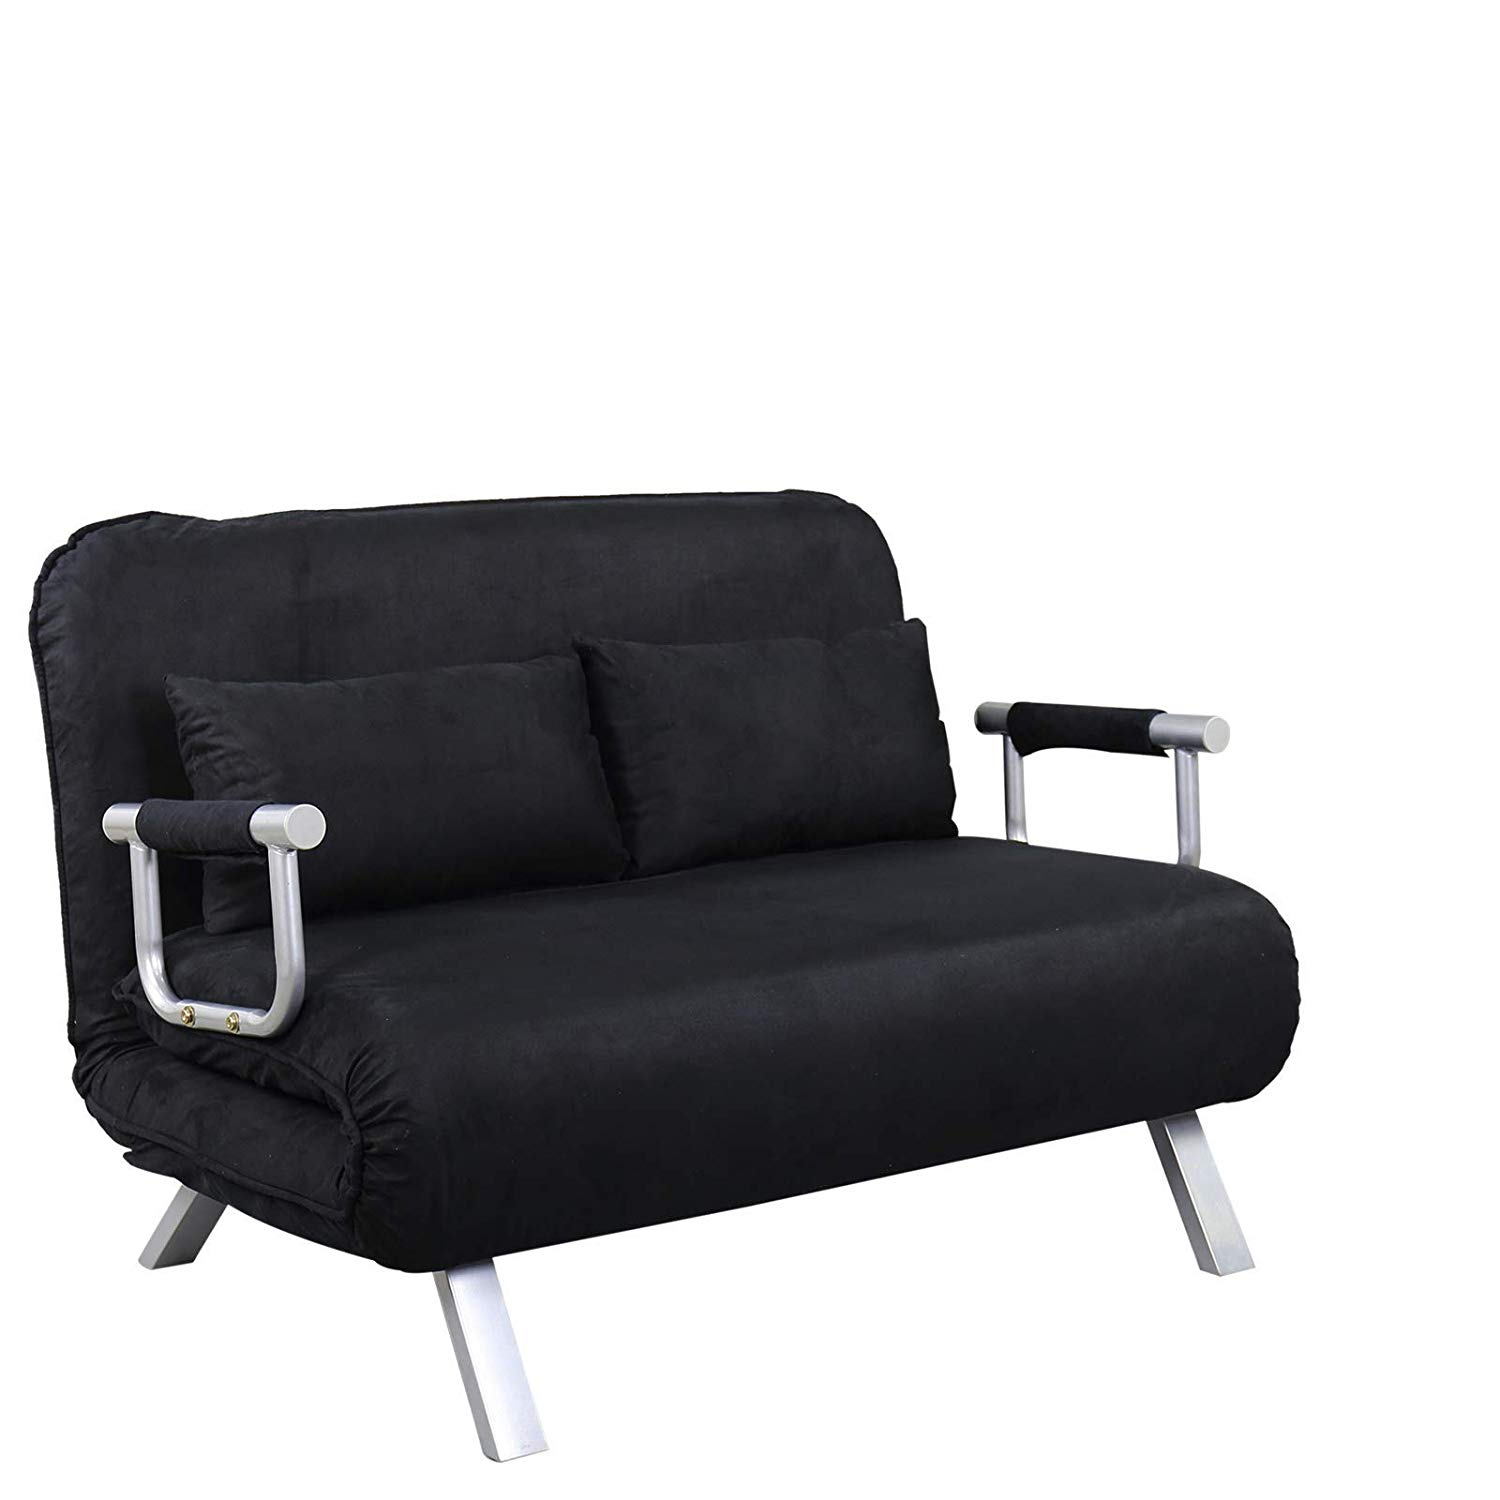 Cheap Bed Loveseat, find Bed Loveseat deals on line at Alibaba.com